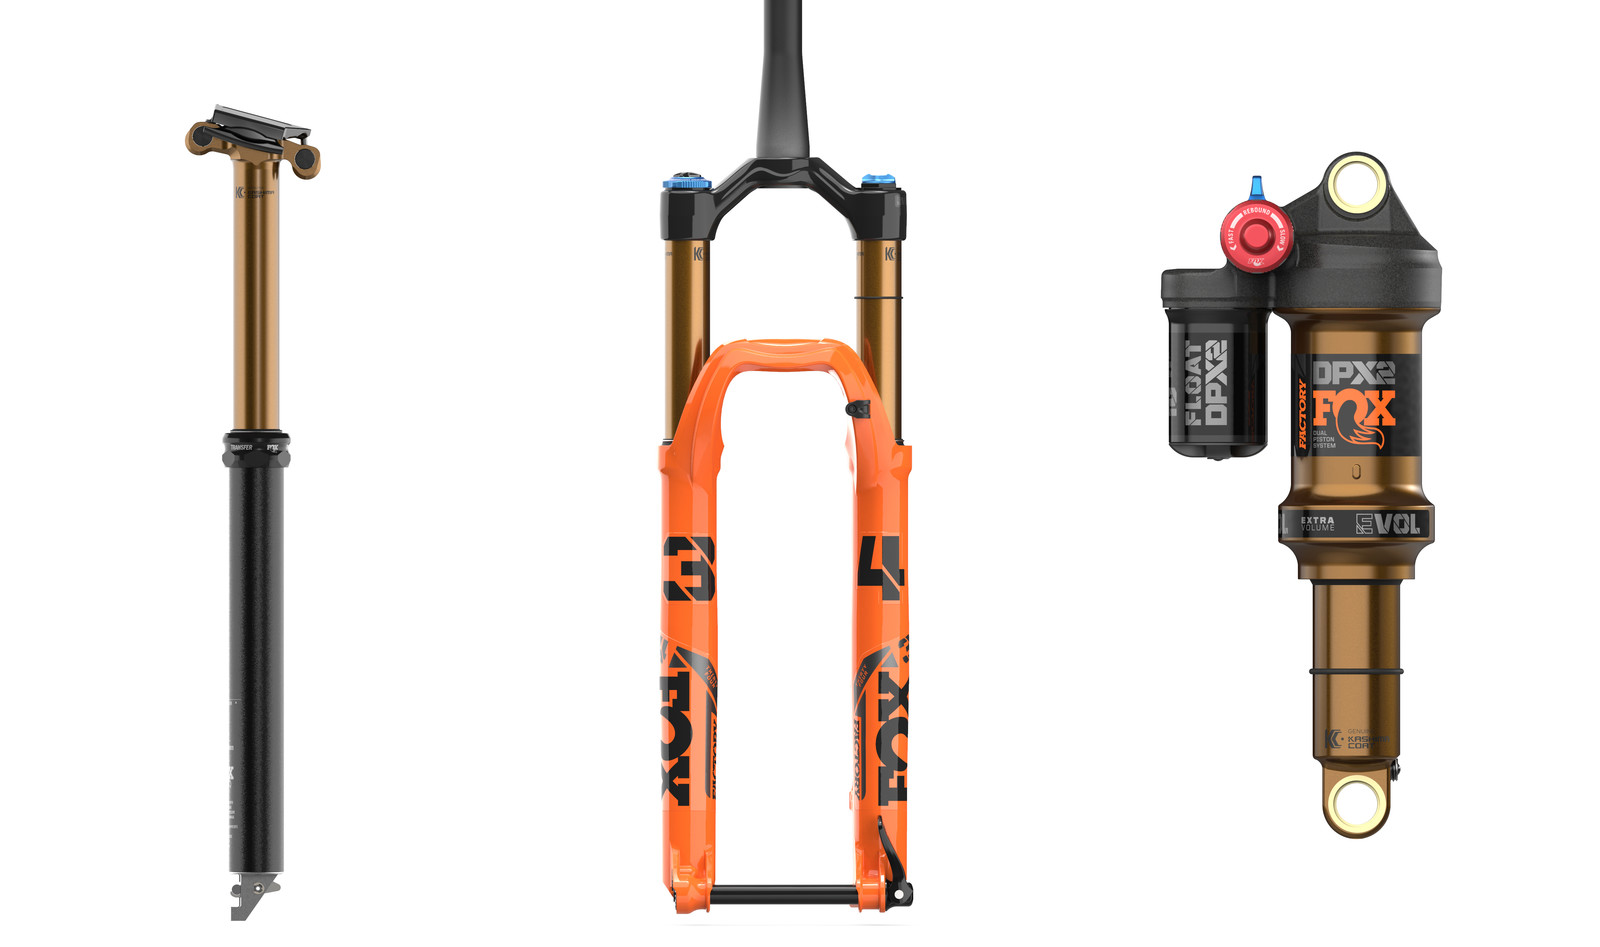 FOX Introduces All-New Transfer Dropper Post, Updated 34 Fork and DPX2 Shock